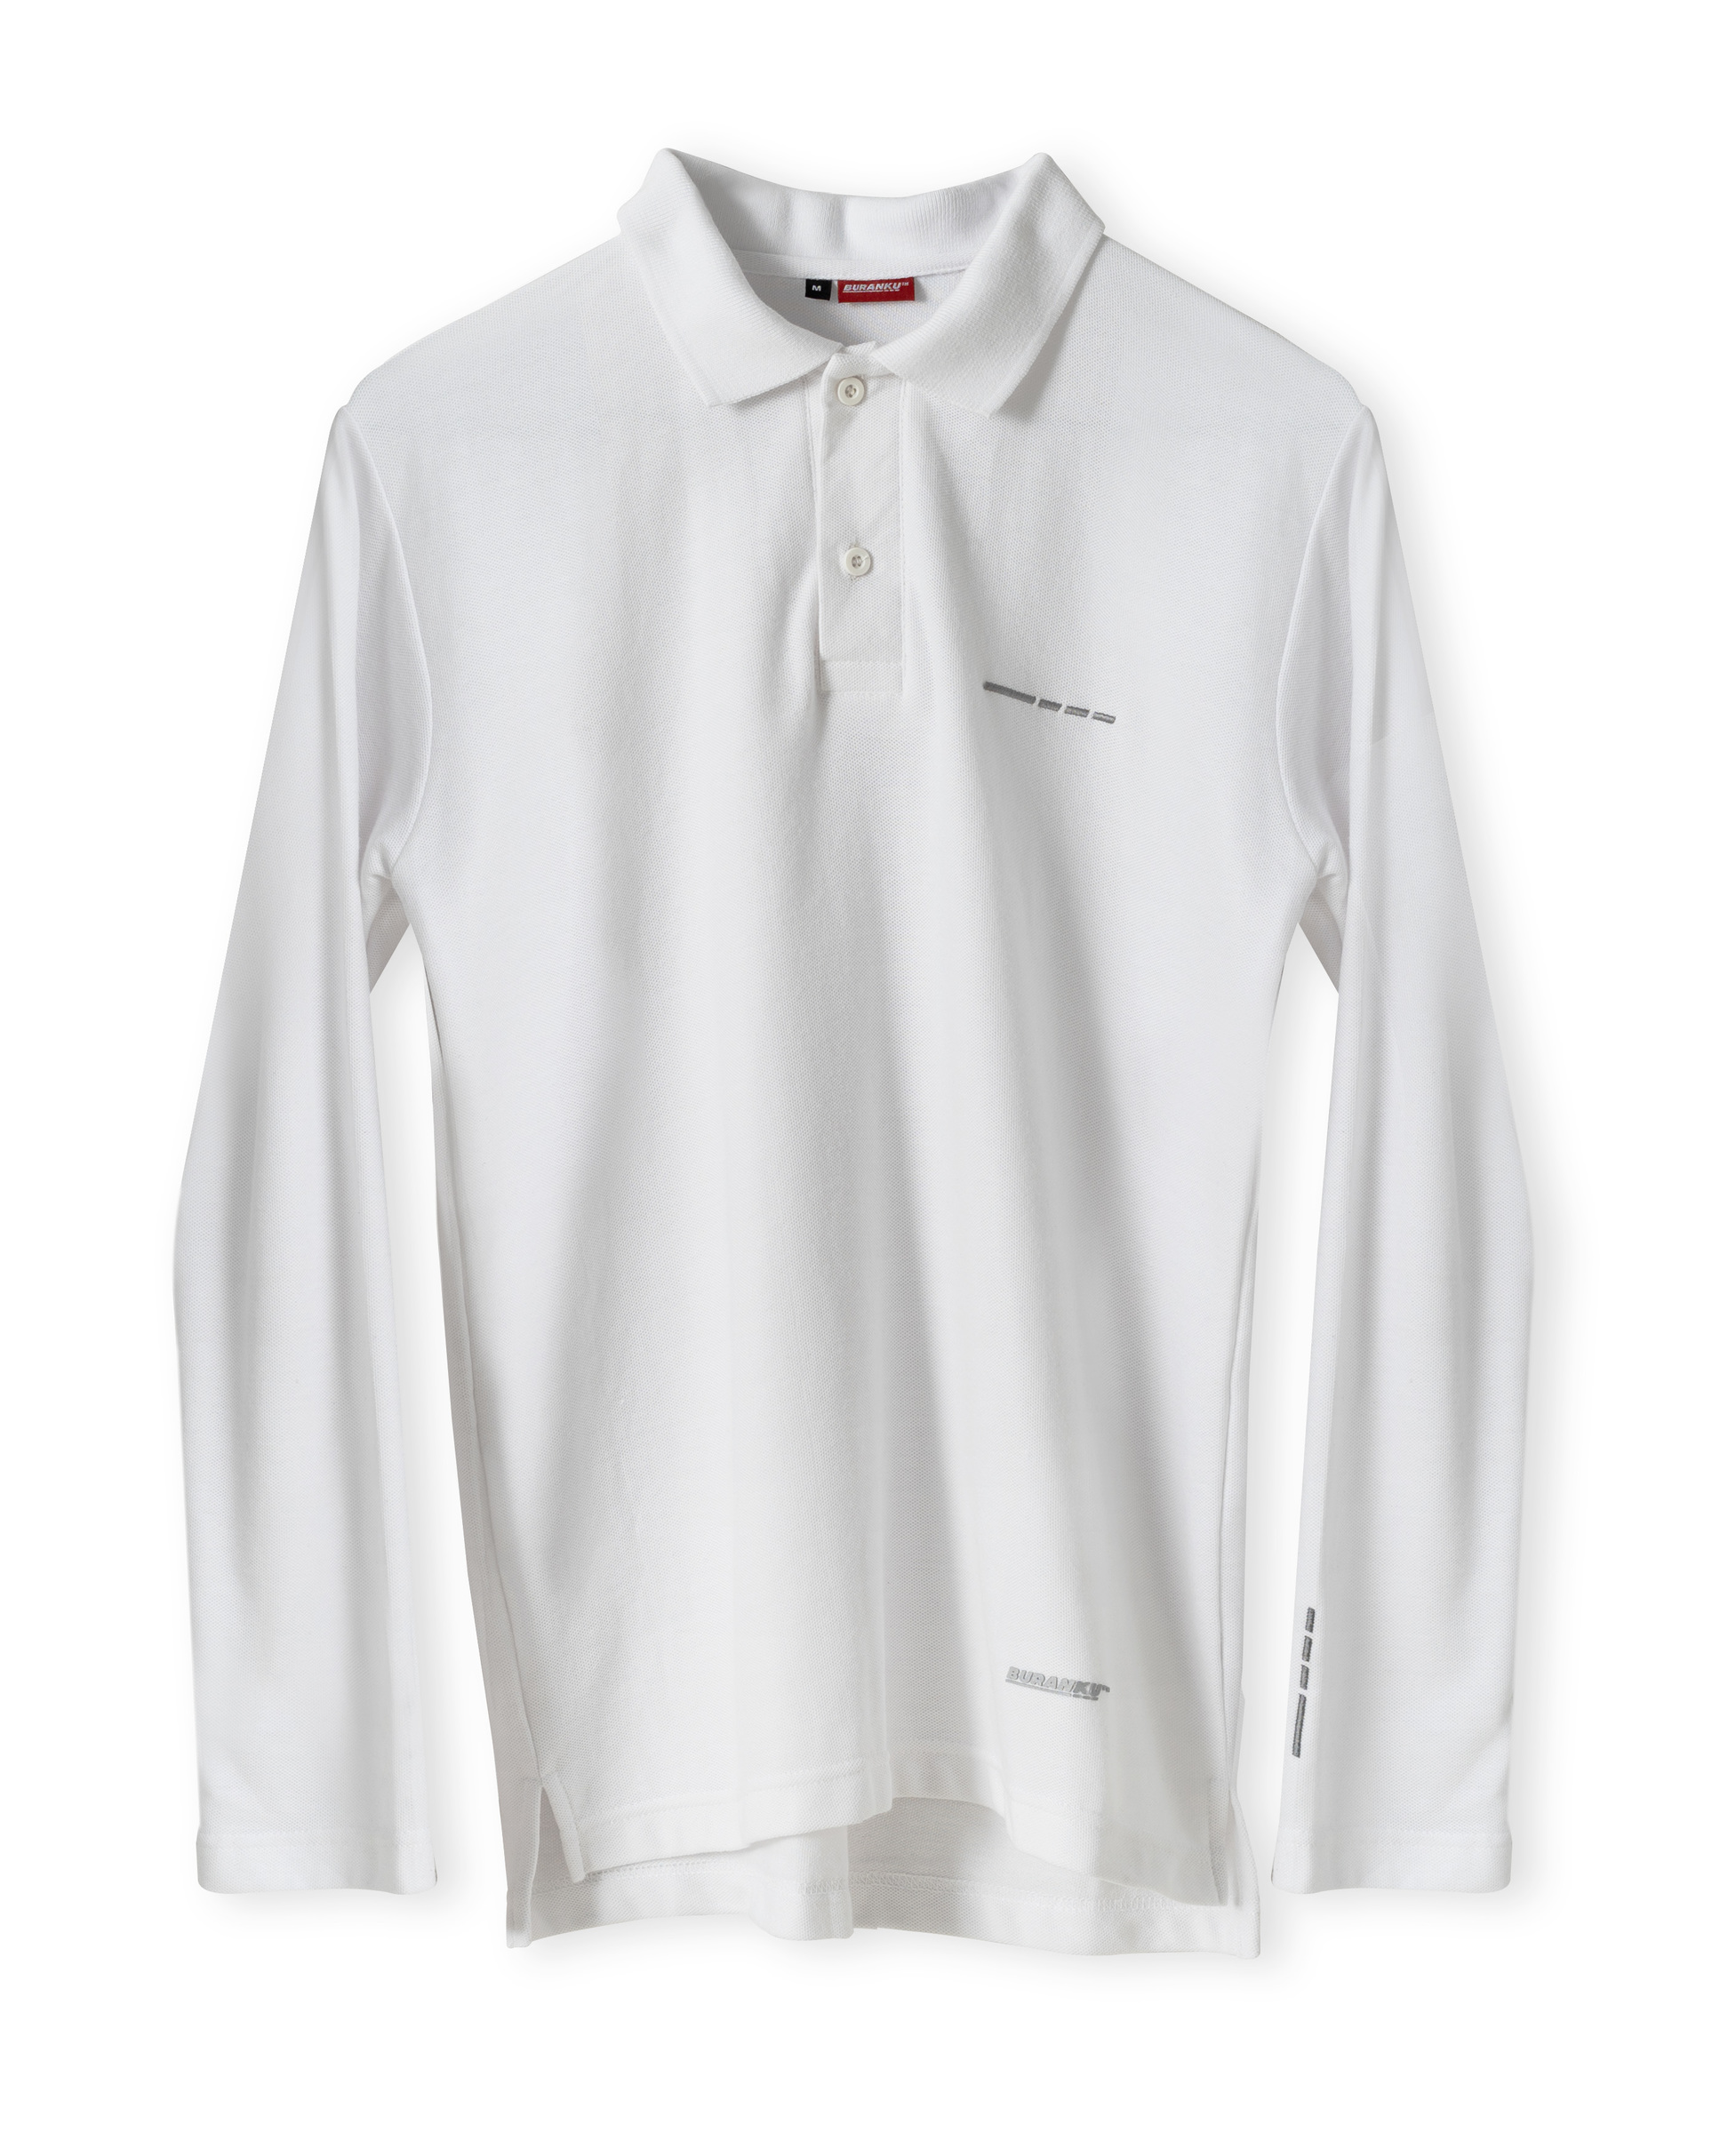 Polo White LS.jpg